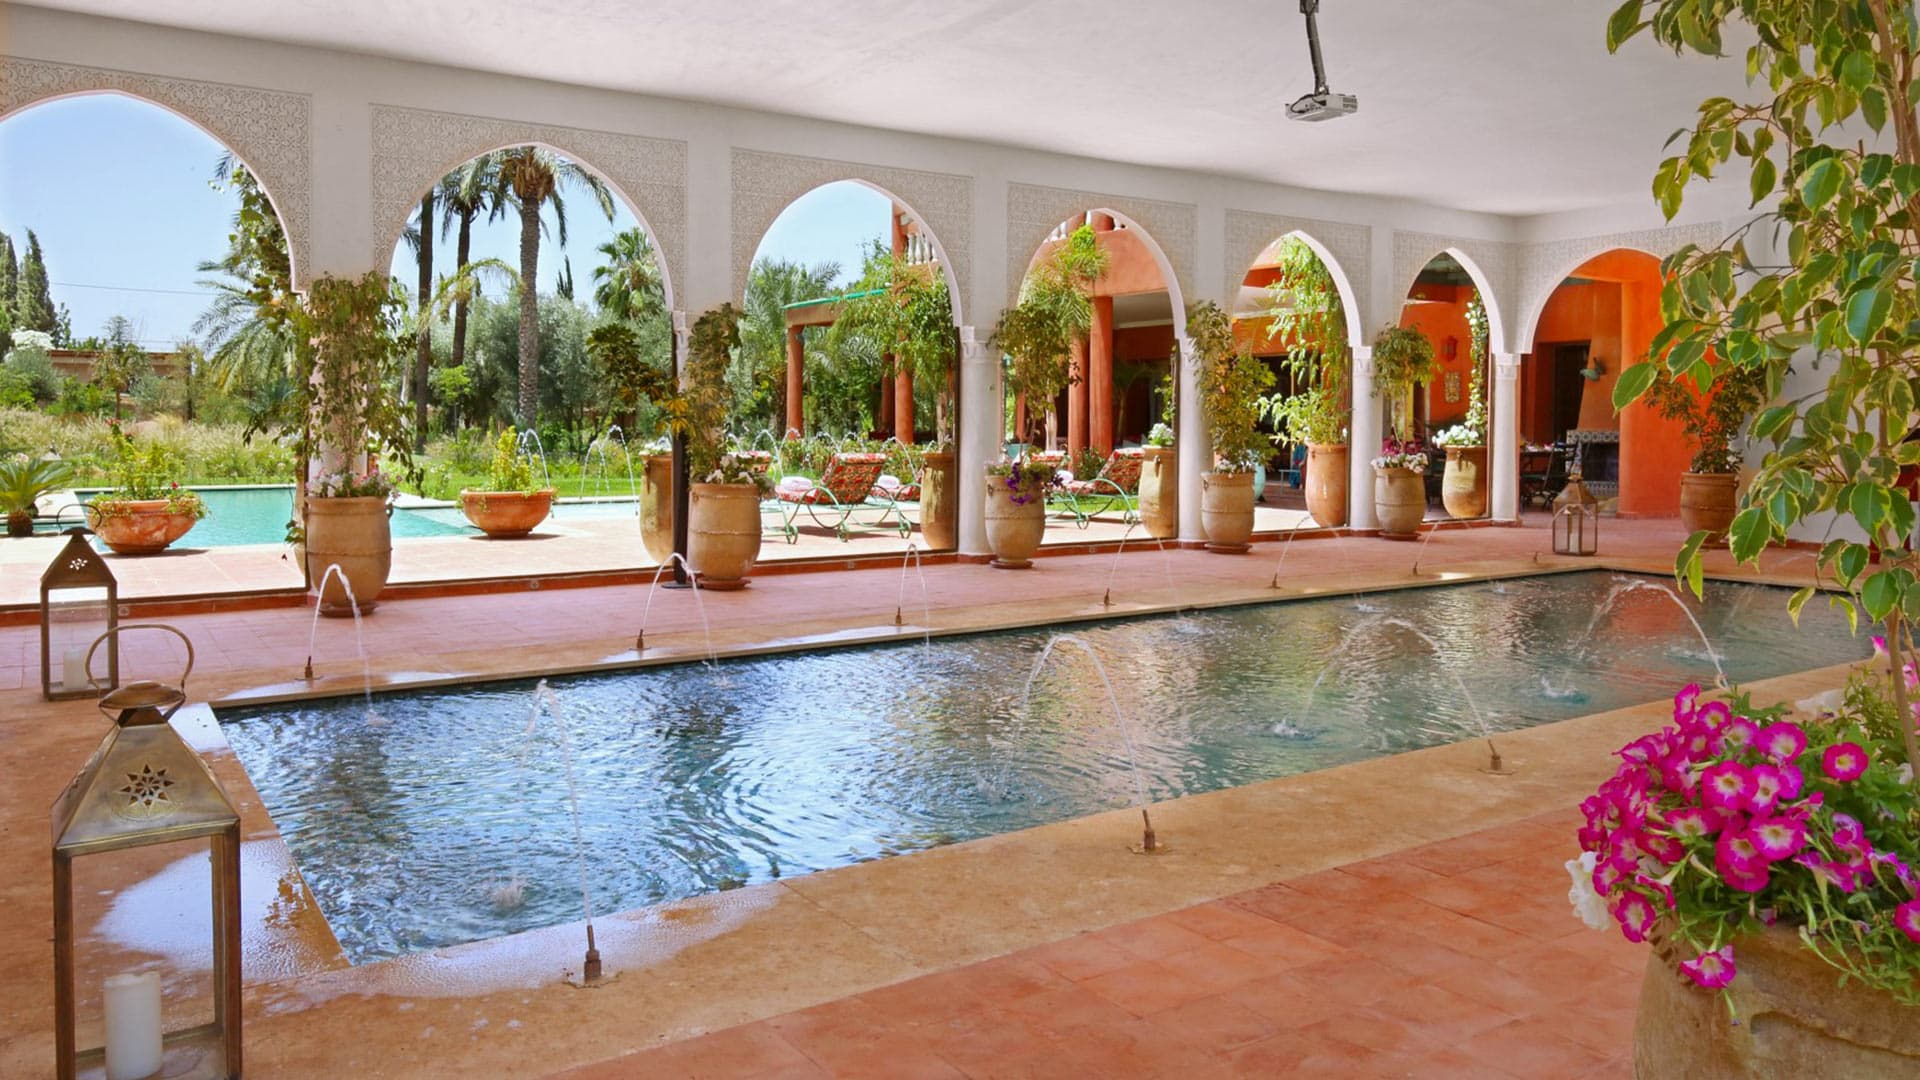 Villa Villa Onolu, Location à Marrakech